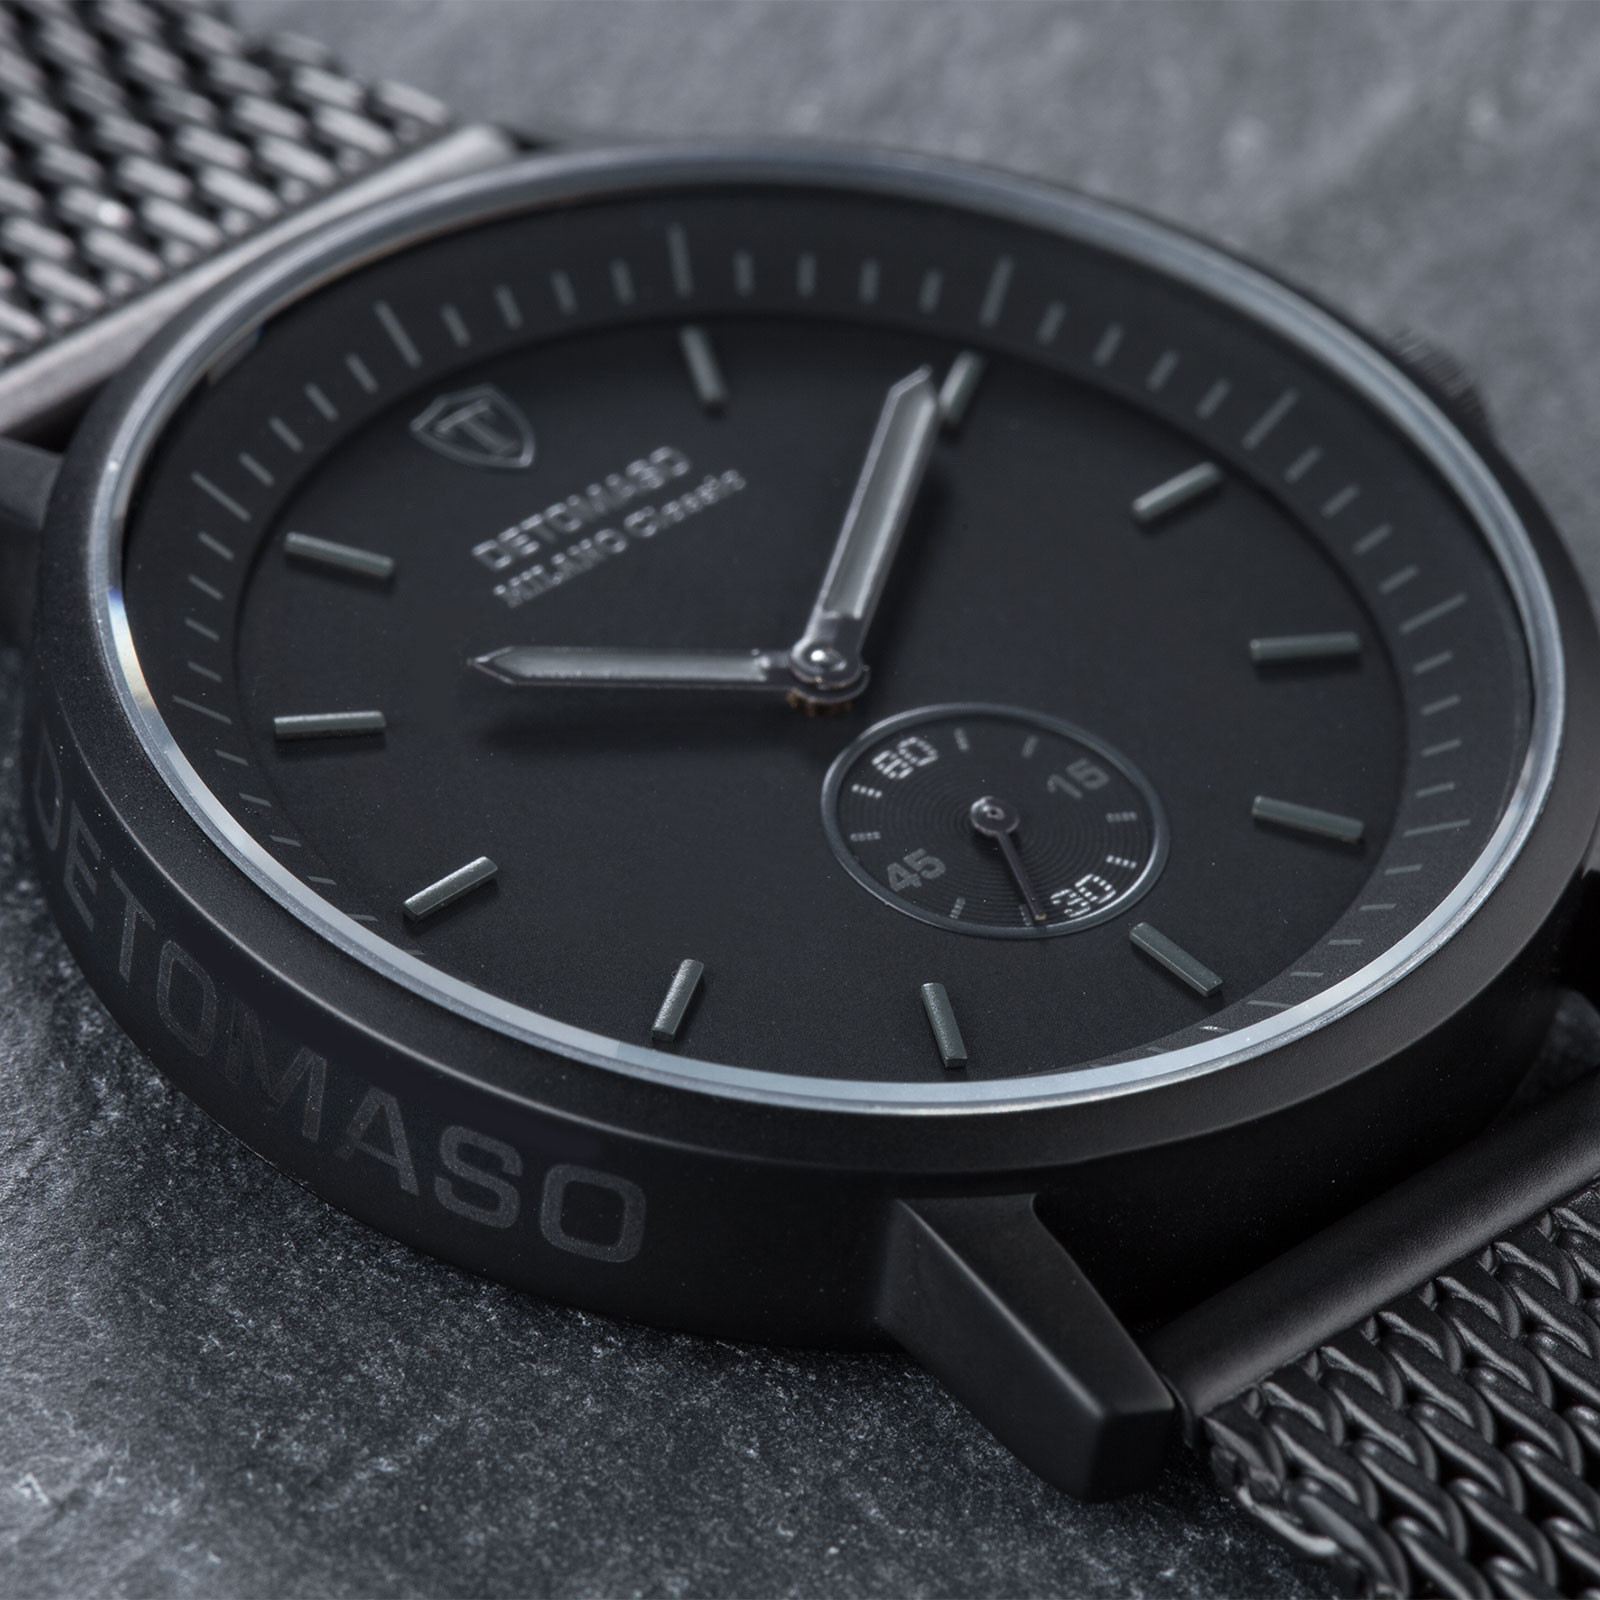 detomaso milano classic montre homme noir bracelet acier maille milanaise neuve ebay. Black Bedroom Furniture Sets. Home Design Ideas